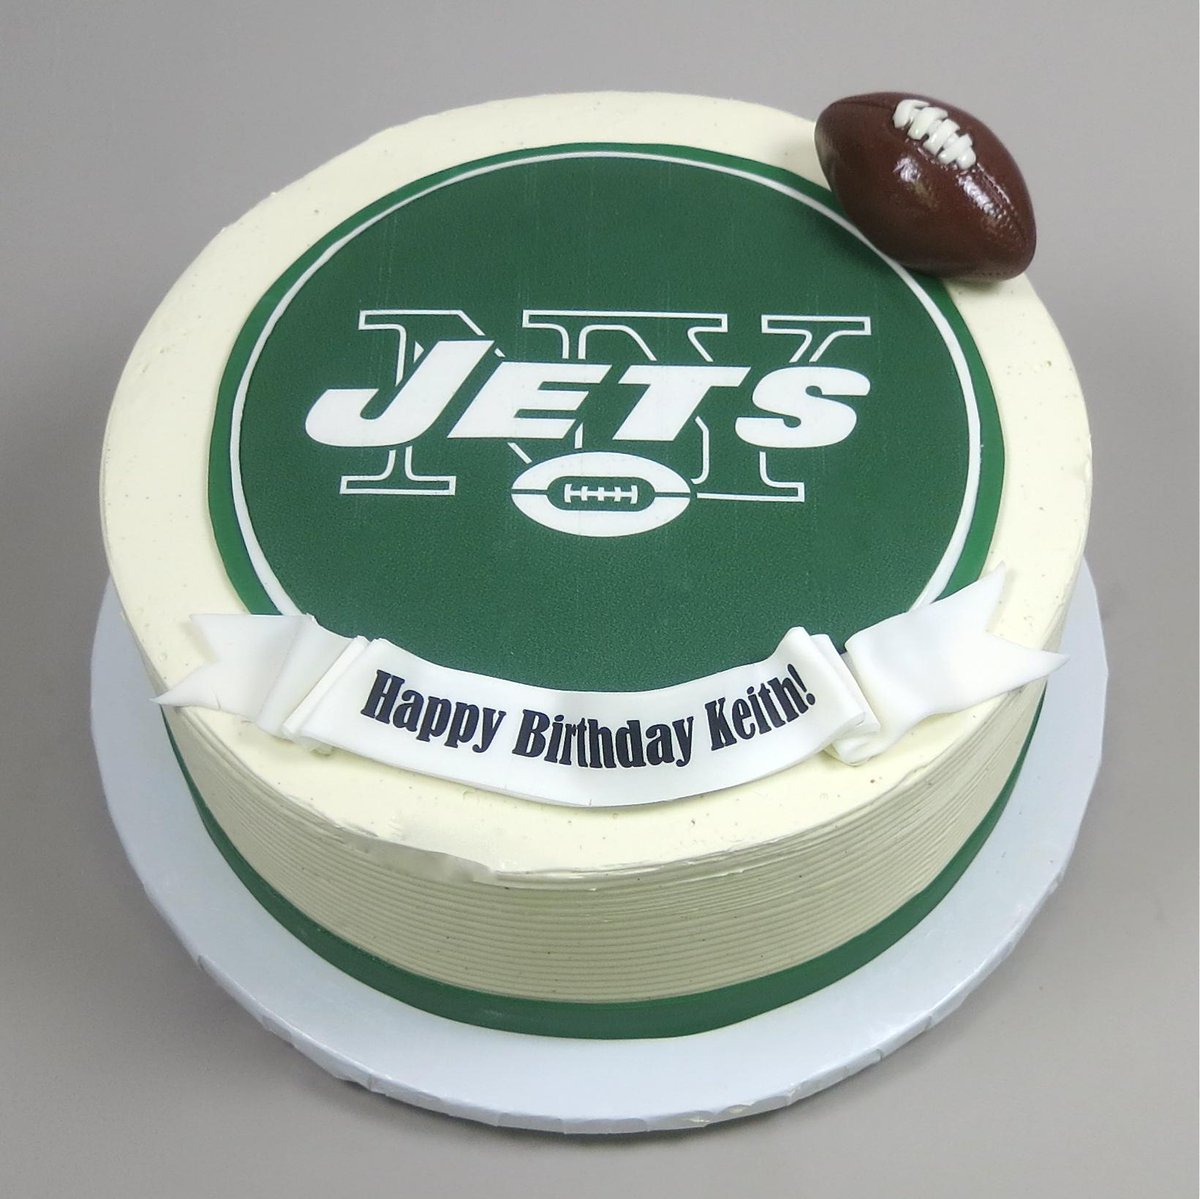 Empire Cake On Twitter Happy Birthday Keith And Go Jets Jets